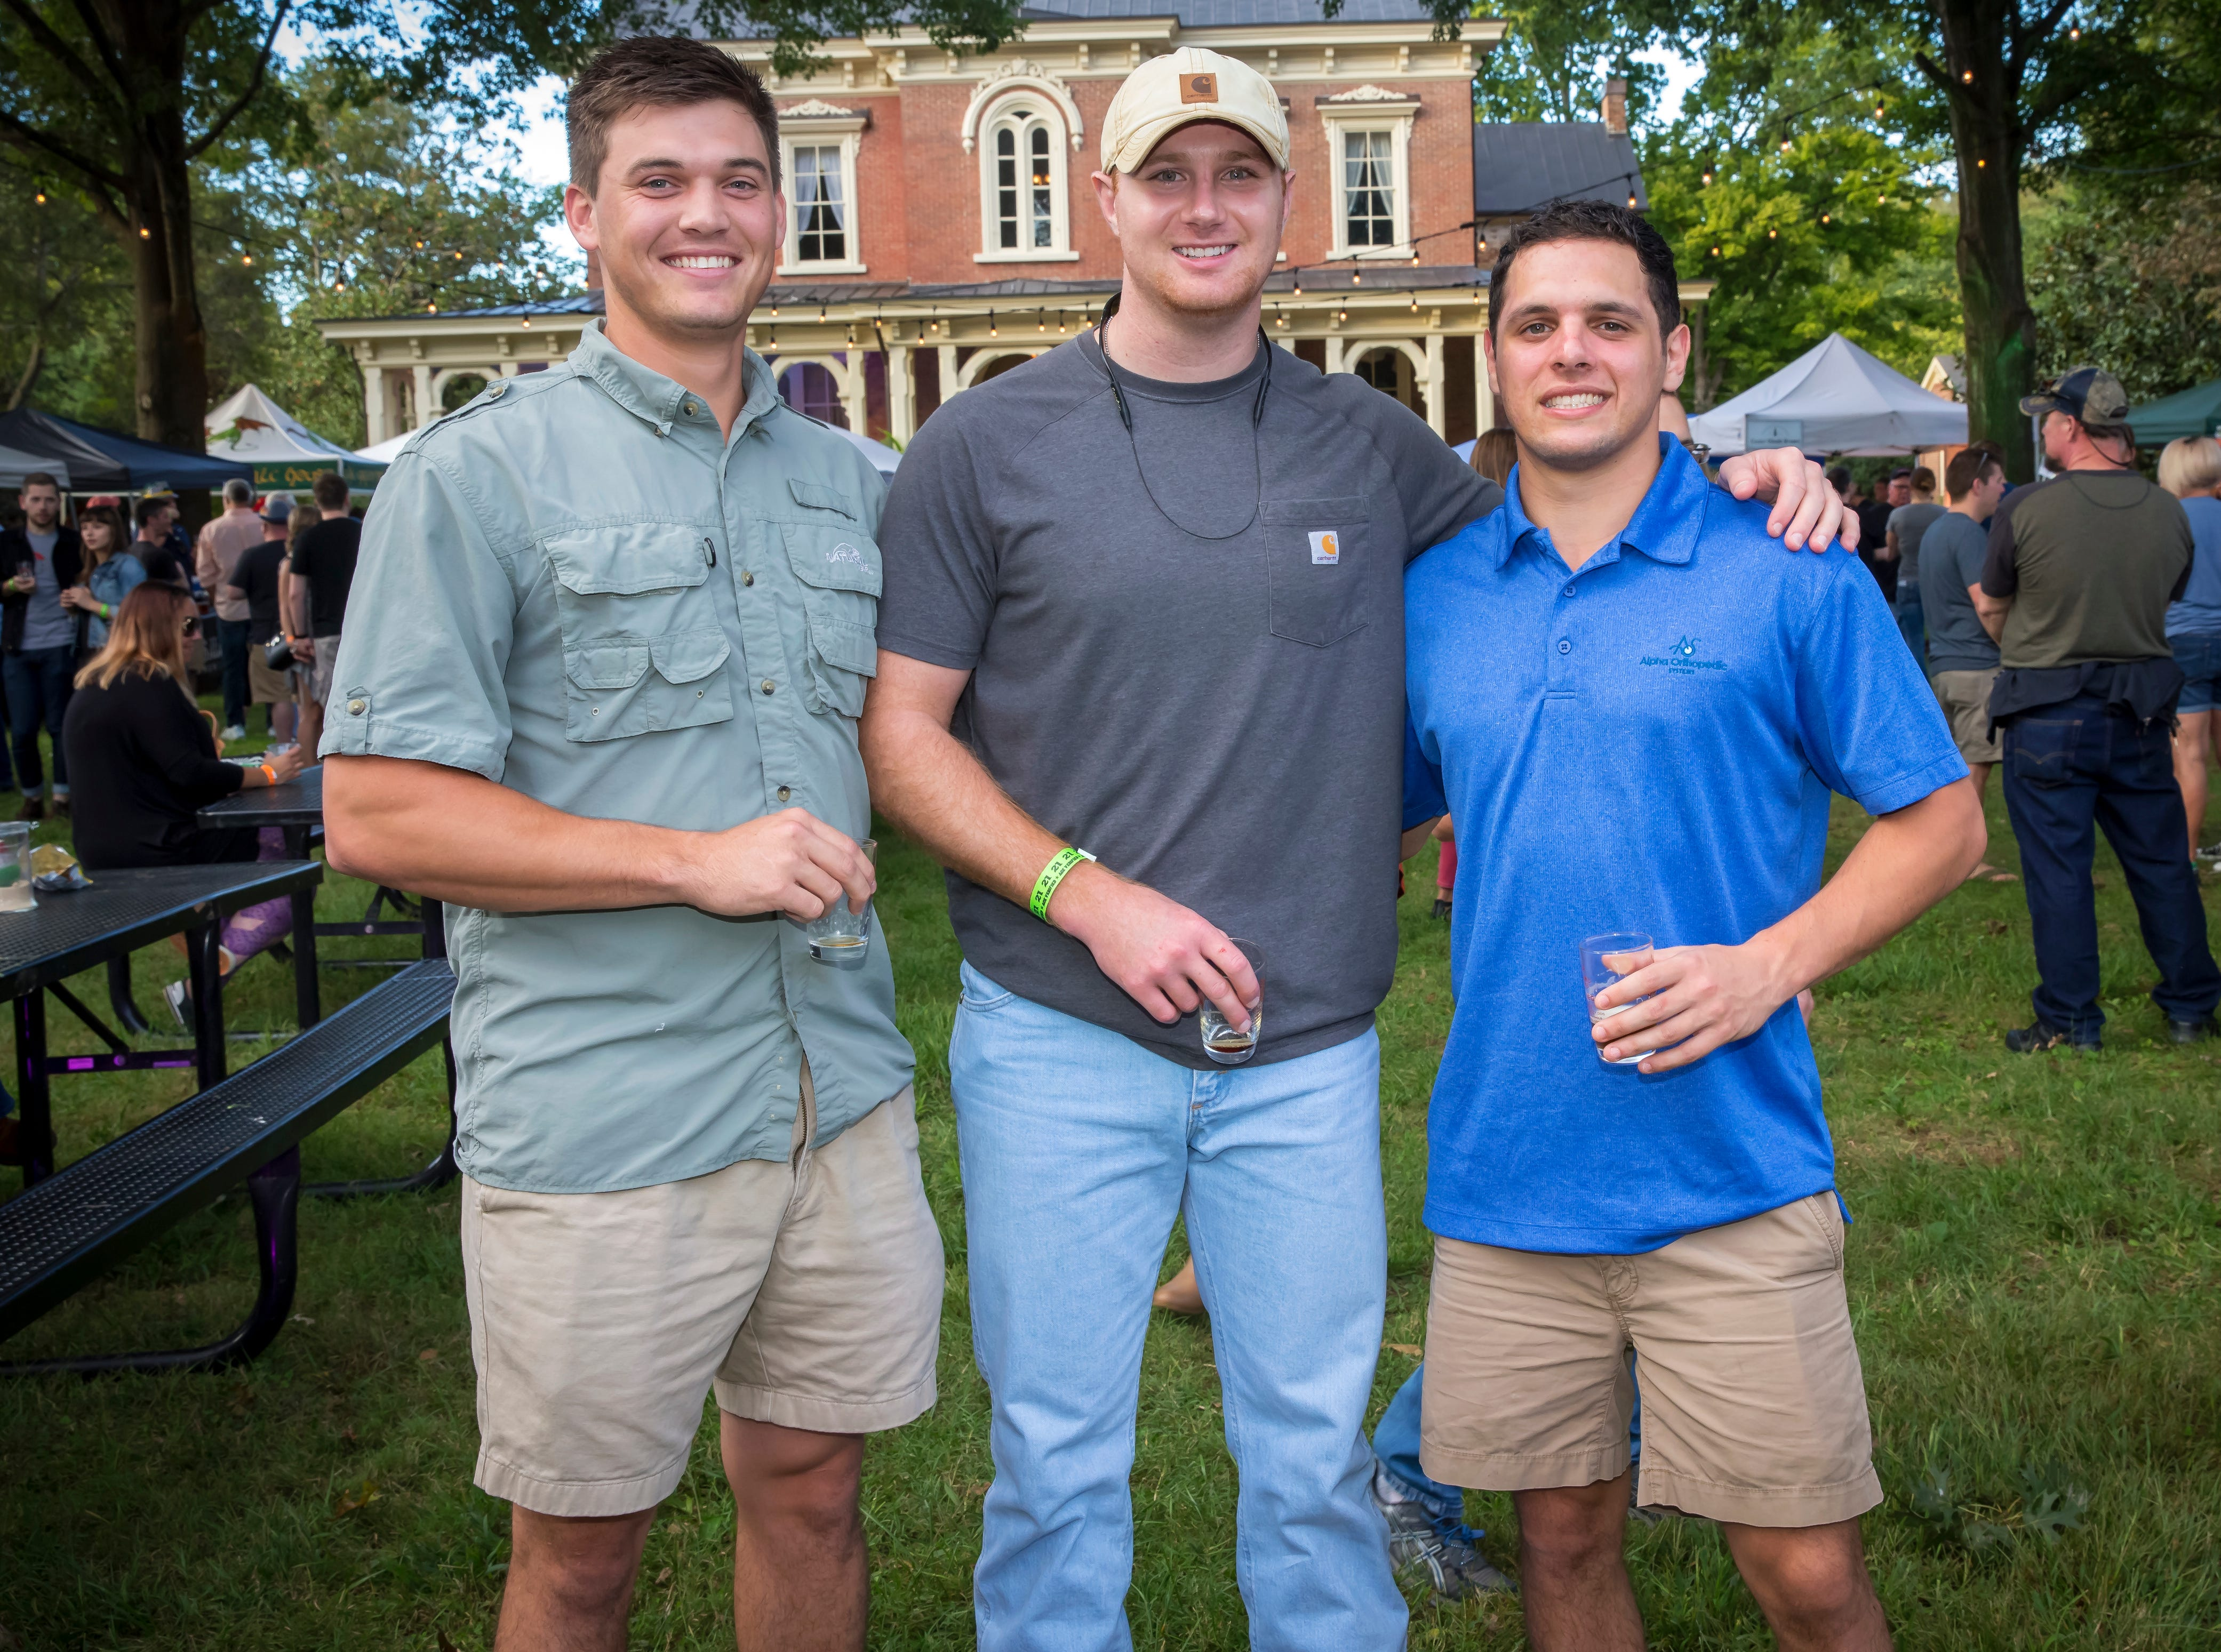 Connor Shea, Garrett Frould and Willis Keeton at the fourth-annual Oktoberfest held at Oaklands Mansion.Jim Davis/for the DNJ